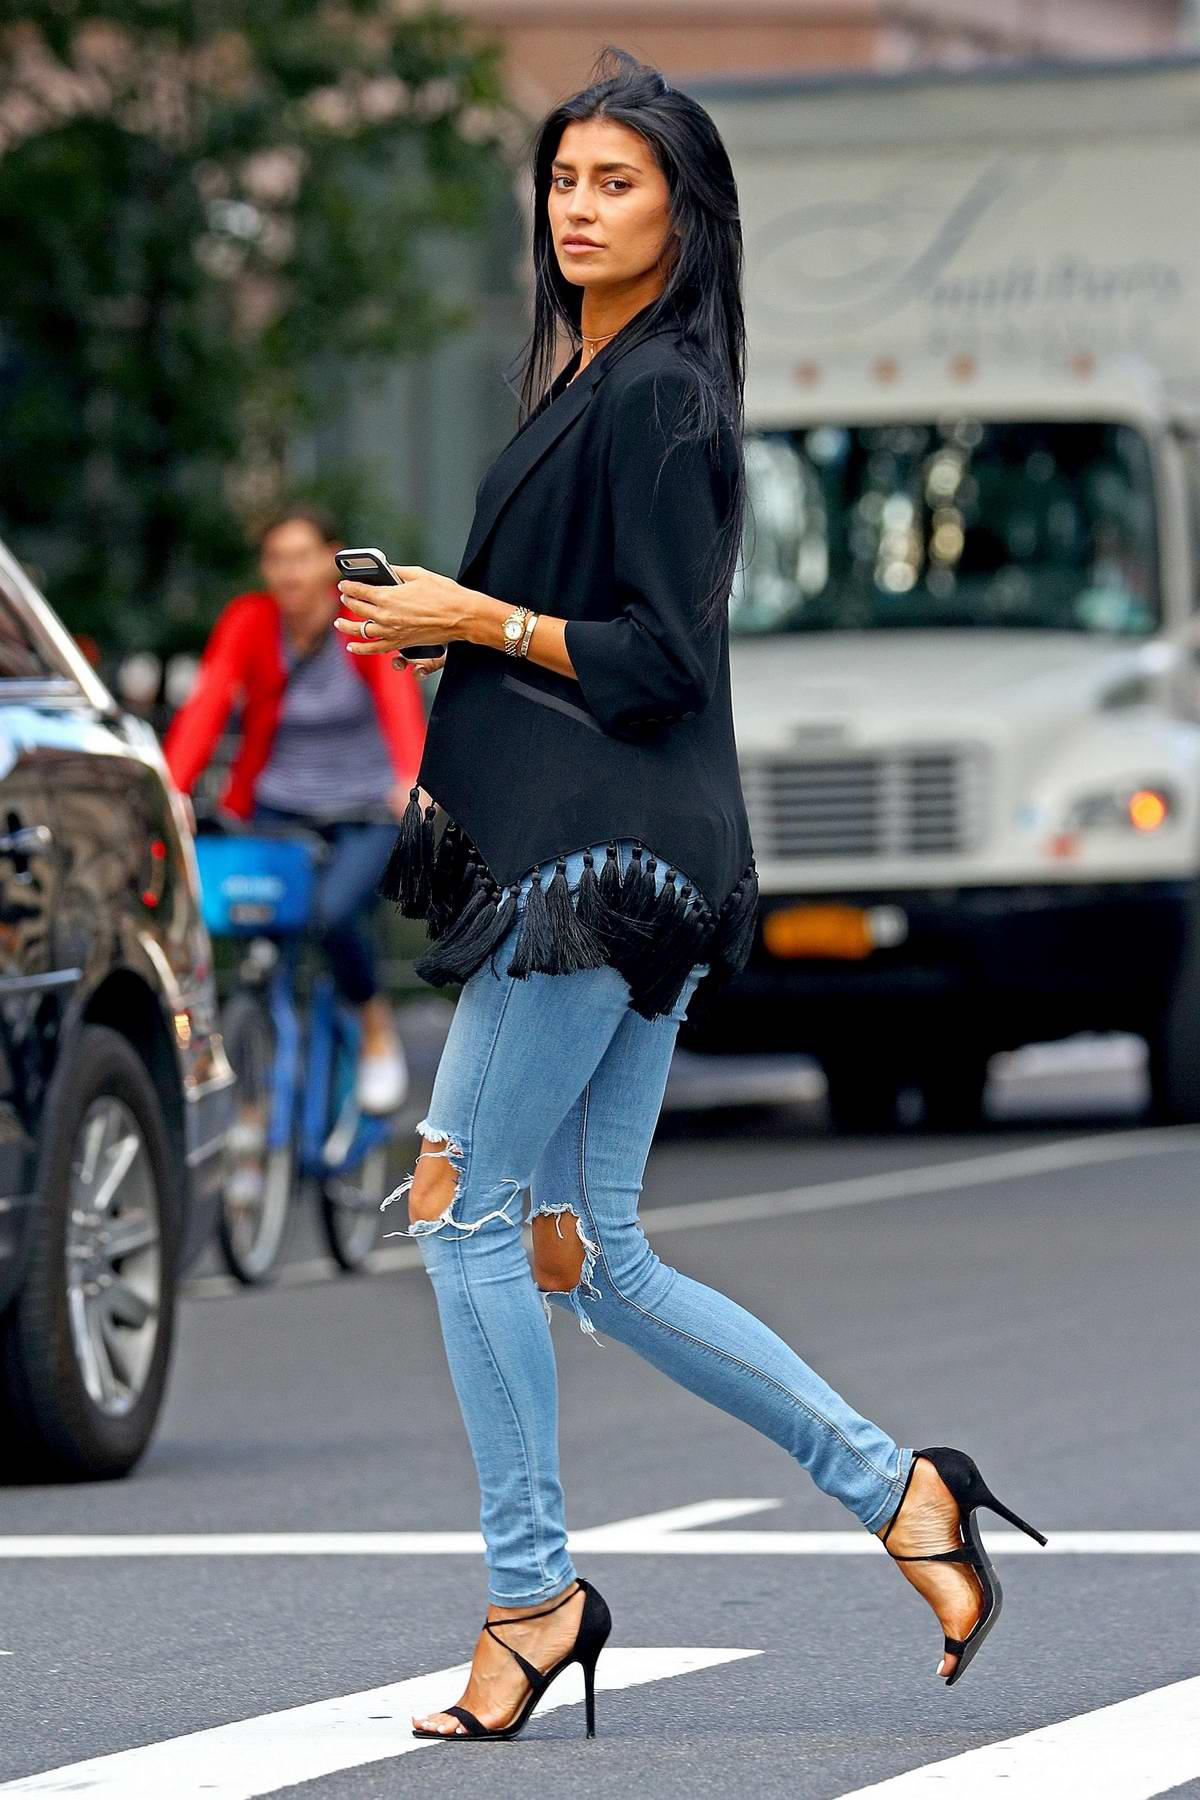 Nicole Williams wears a tasseled blazer and ripped jeans while out running a few errands in-between fittings during New York Fashion Week